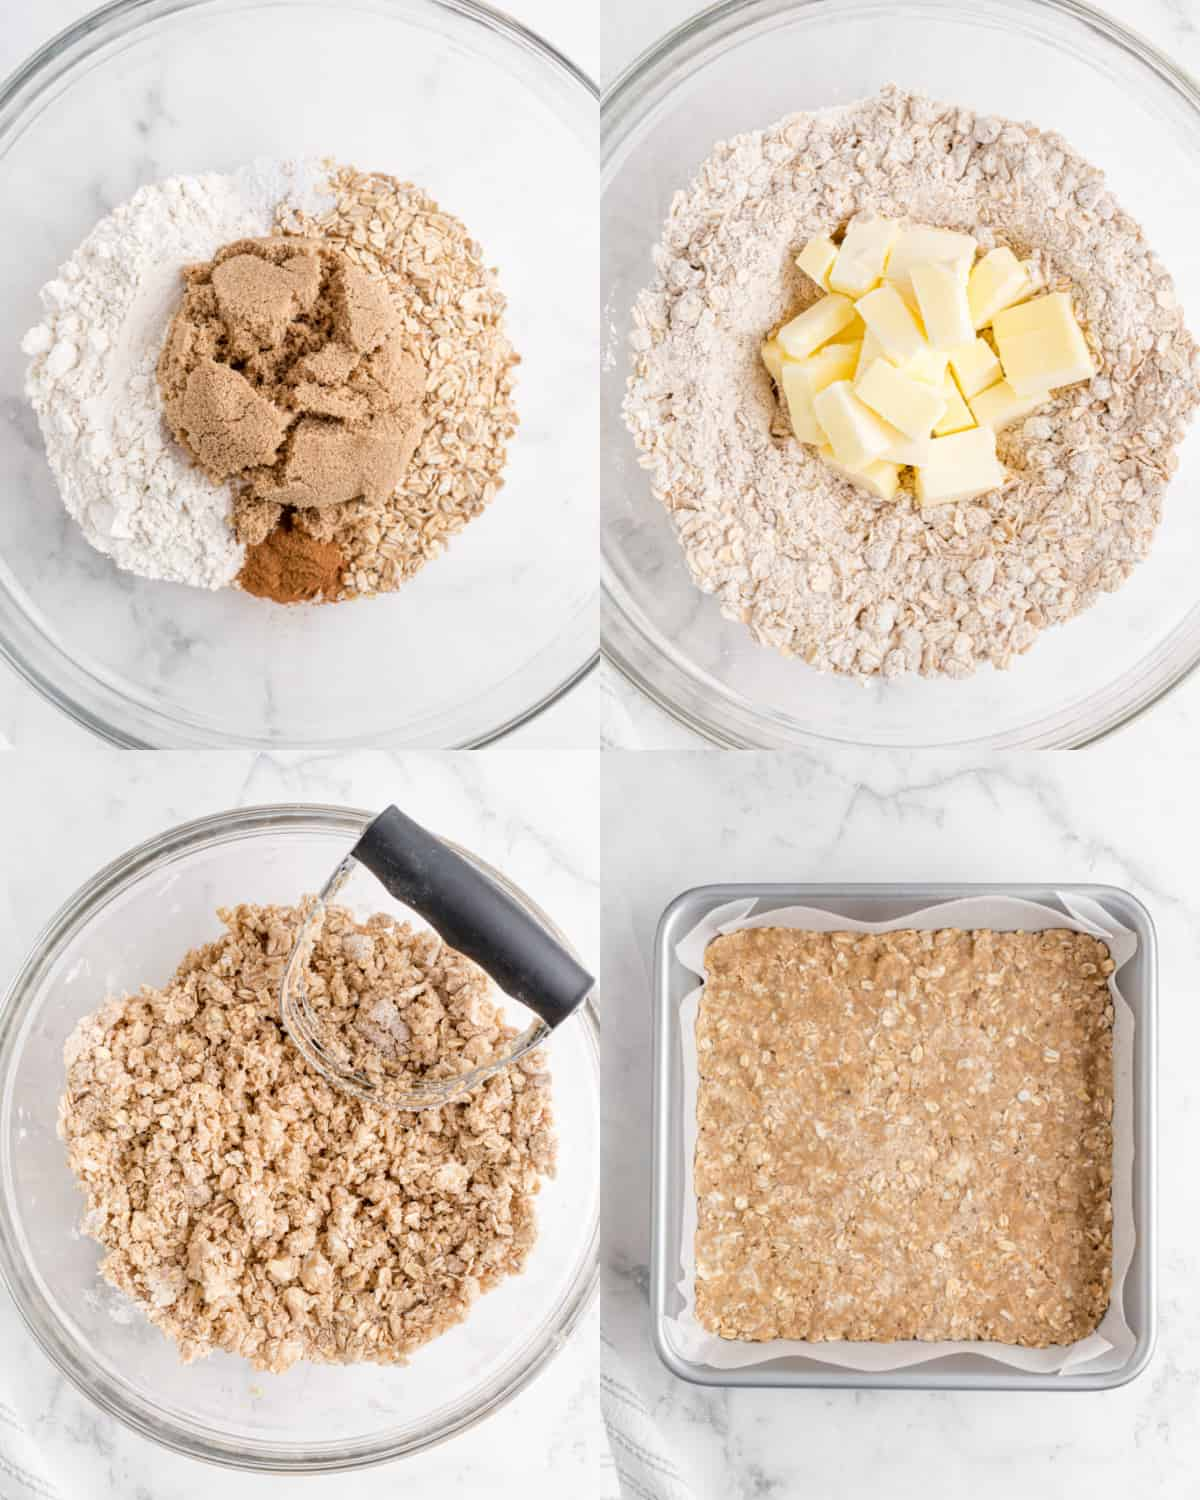 mixing together the ingredients for the crumble topping in a bowl